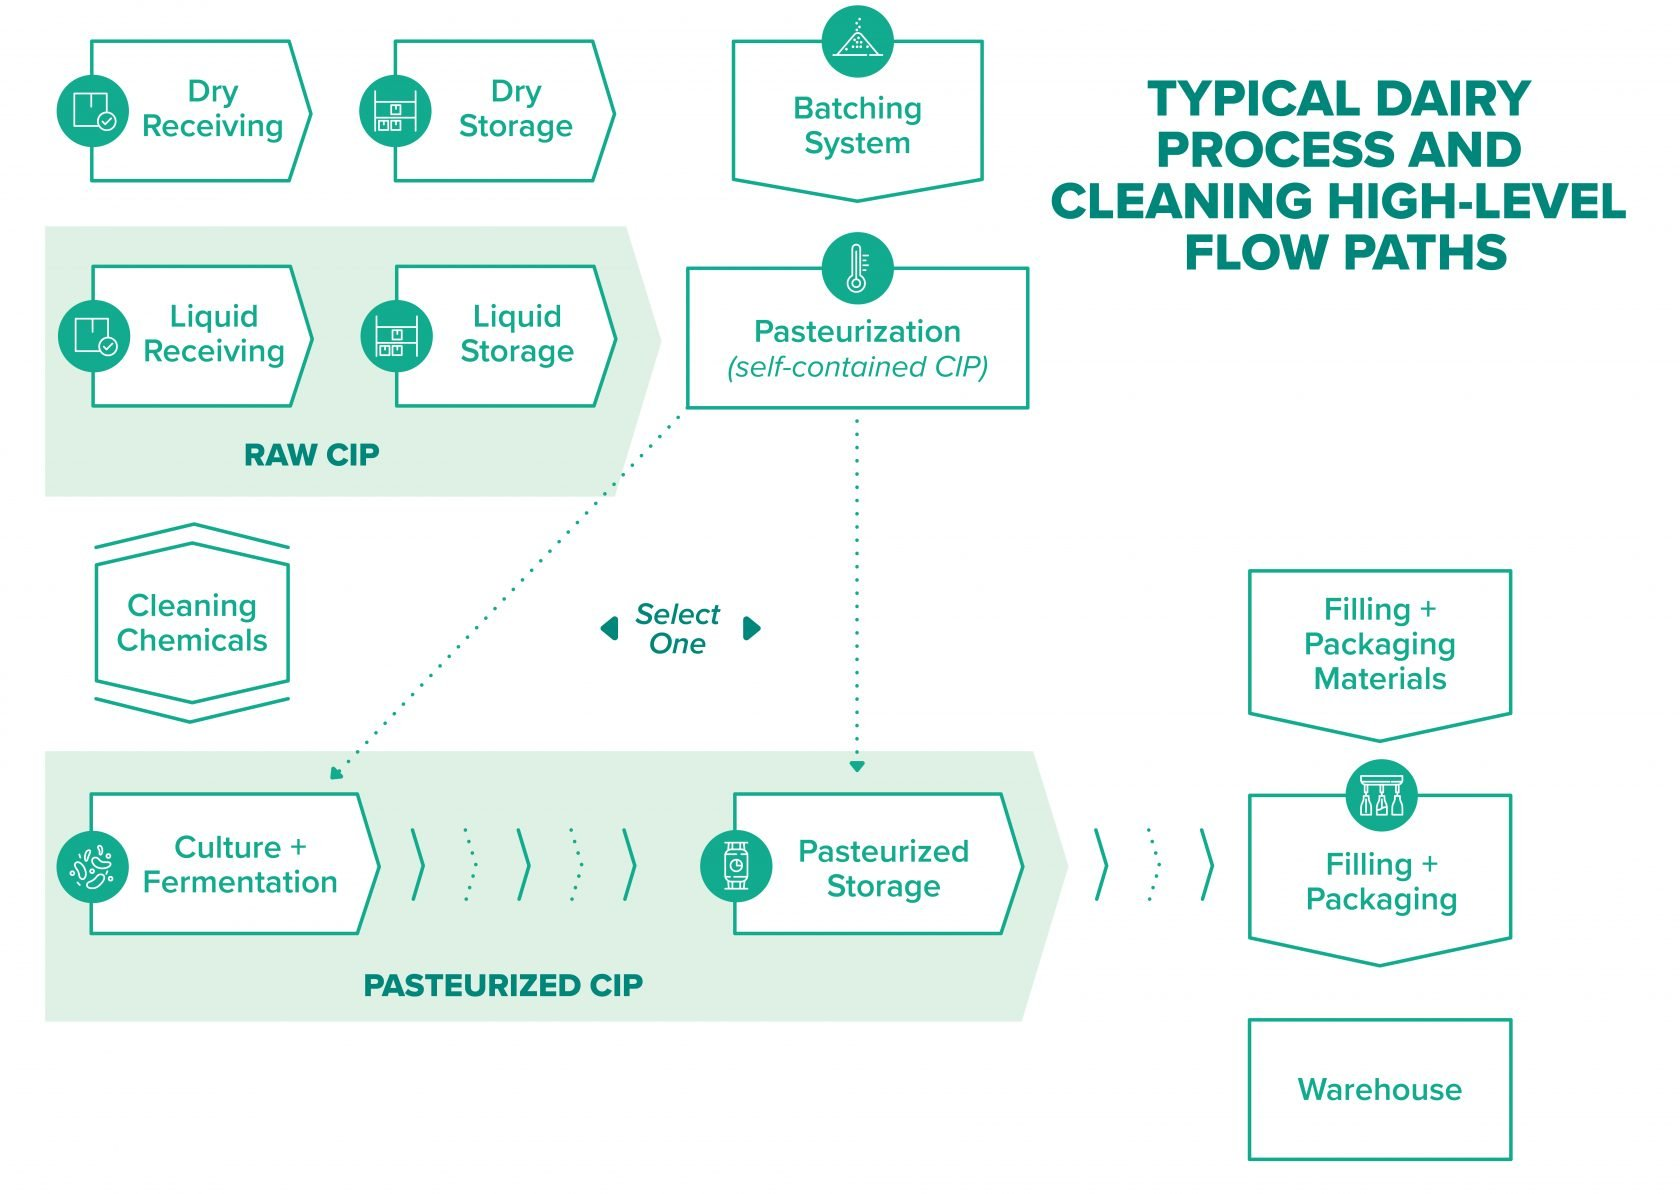 Production steps in dairy processing